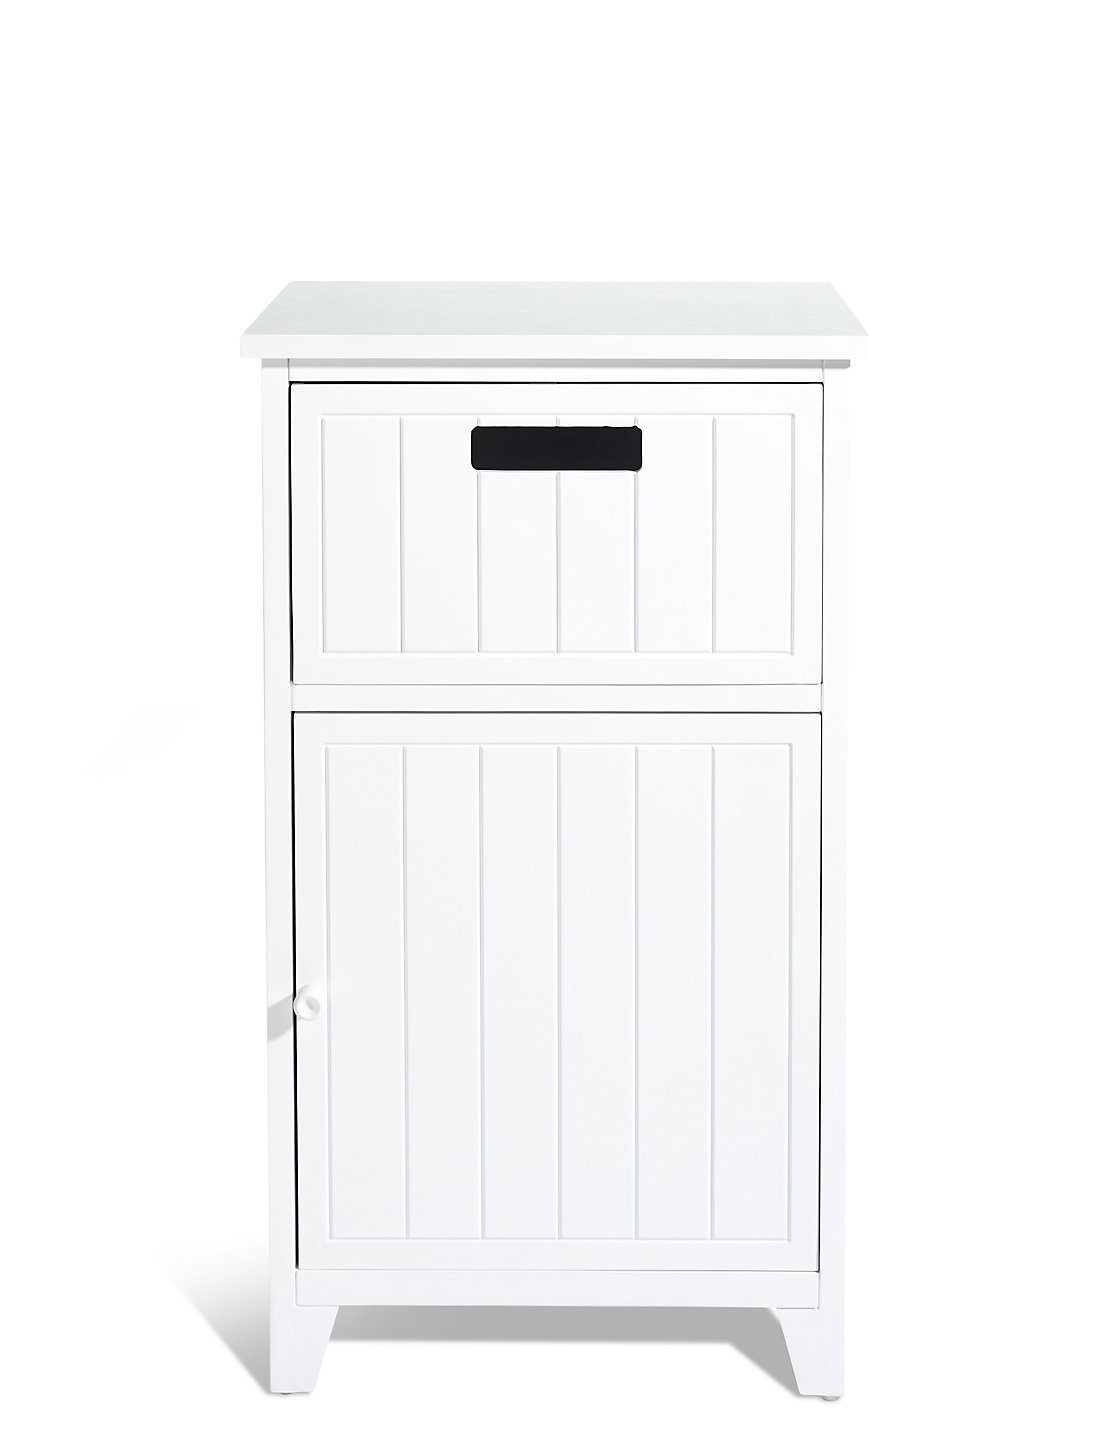 Bathroom storage units free standing - Whitby Towel Cupboard